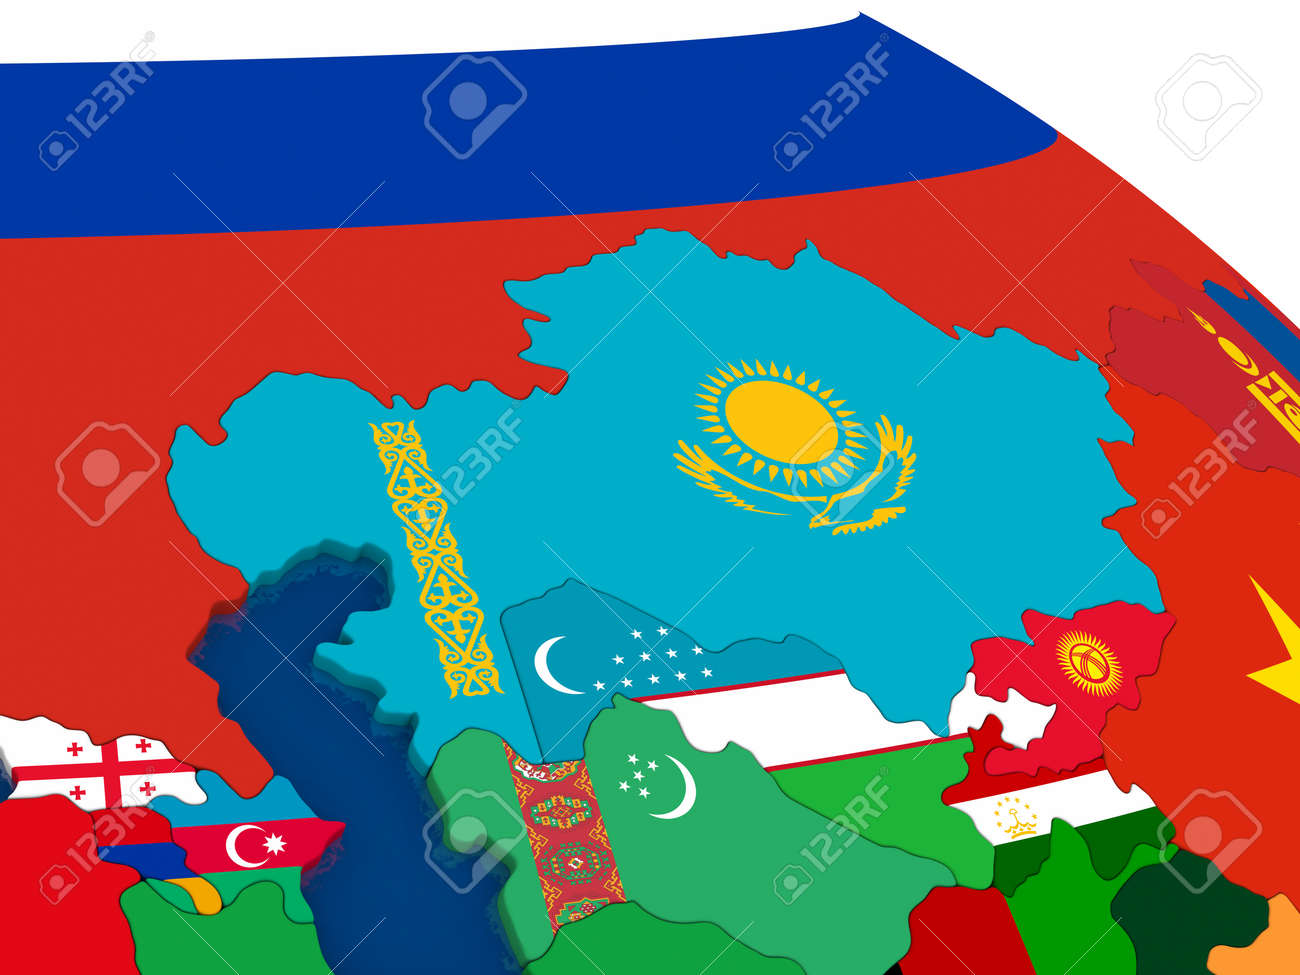 Kazakhstan Political Map.Map Of Kazakhstan With Embedded Flags On 3d Political Map Accurate